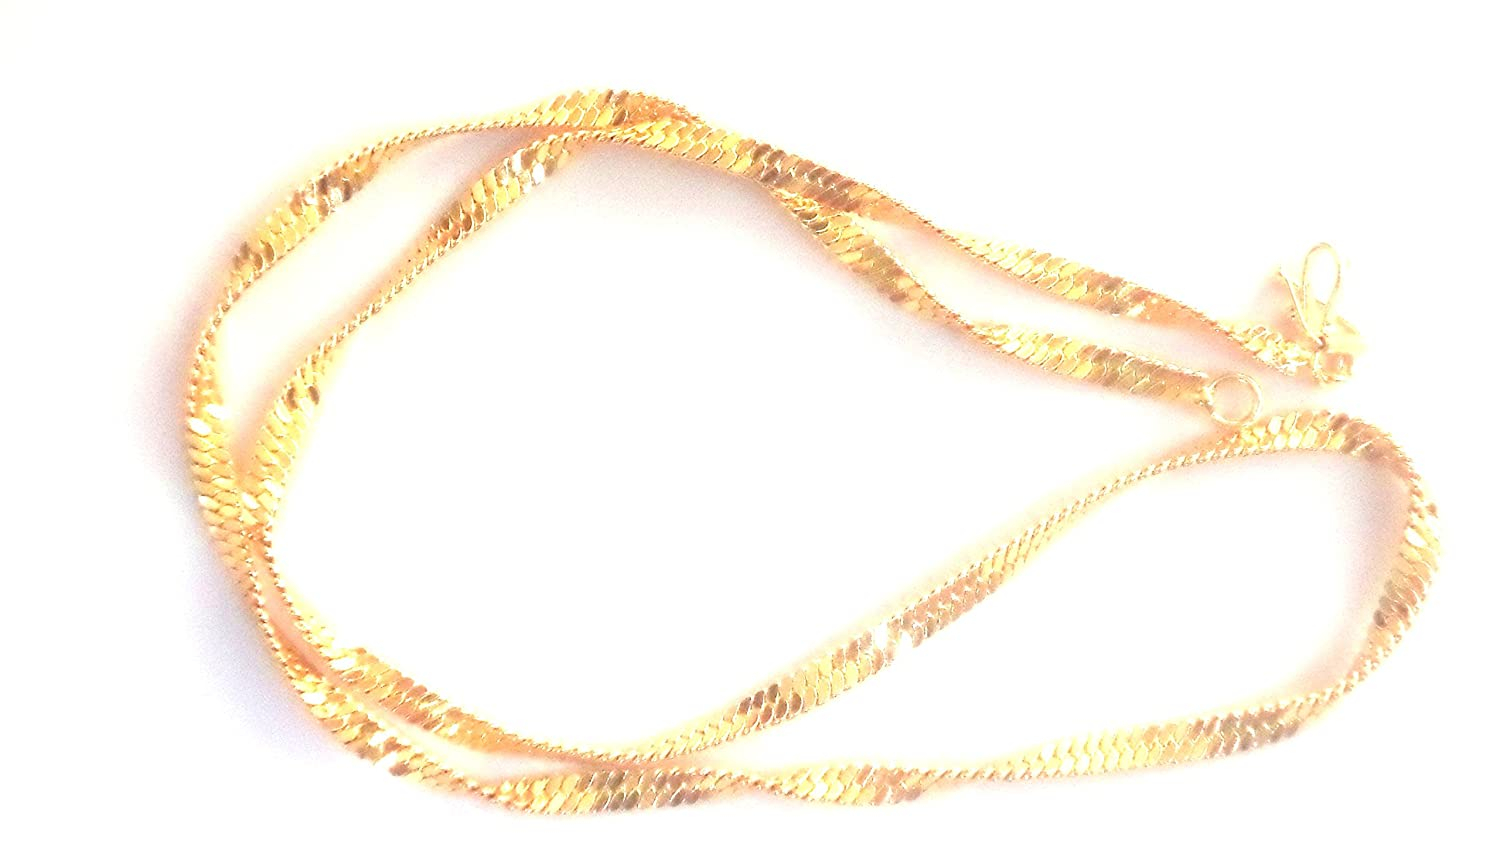 youtube or test gold a tell fake how if me is necklace breakpoint to real at